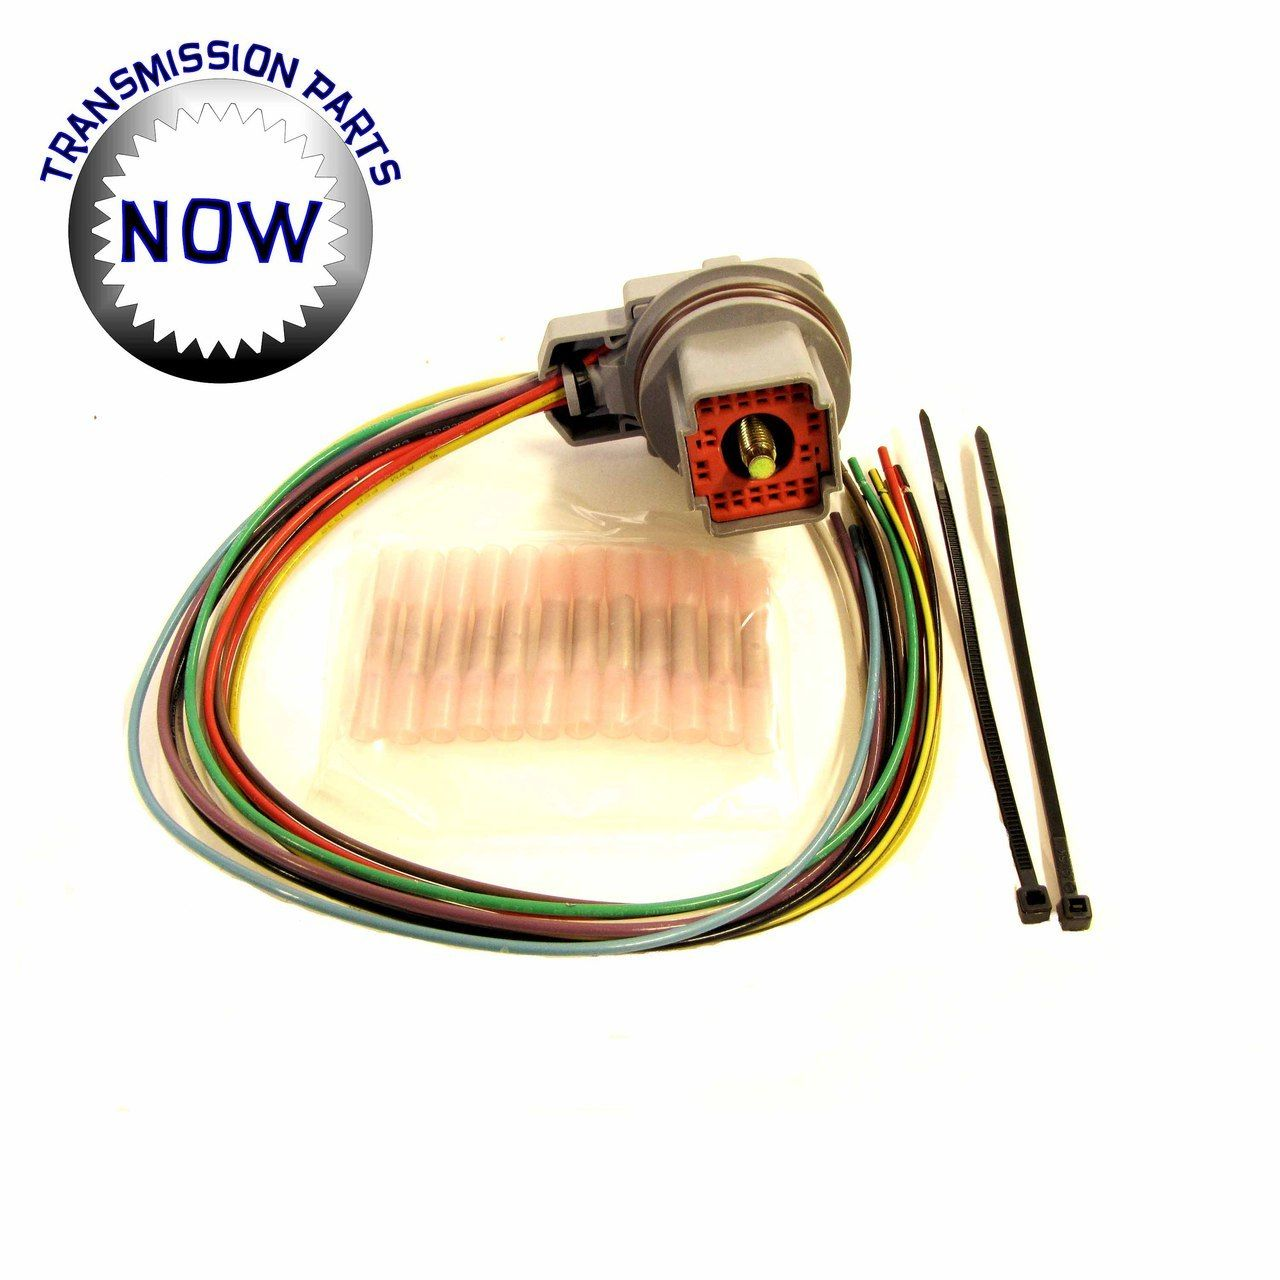 hight resolution of 5r55w 5r55s solenoid connector repair kit